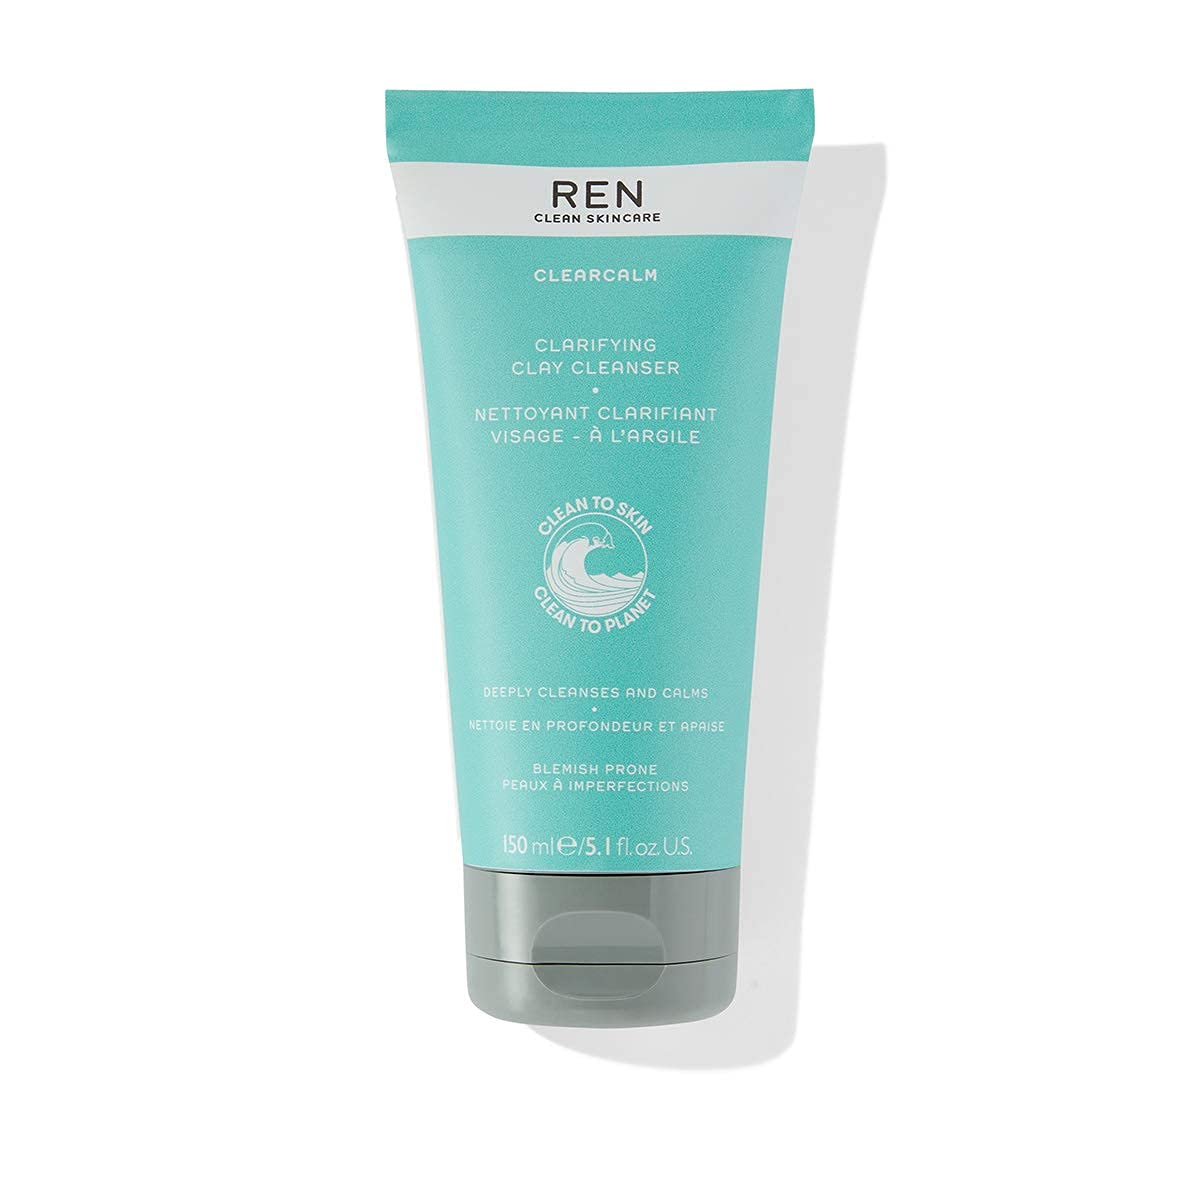 REN Clean Skincare Clearcalm Clarifying Clay Cleanser, Breakout-Prone Skin, With Kaolin Clay & Willow Bark 5.1 FlOz: Premium Beauty